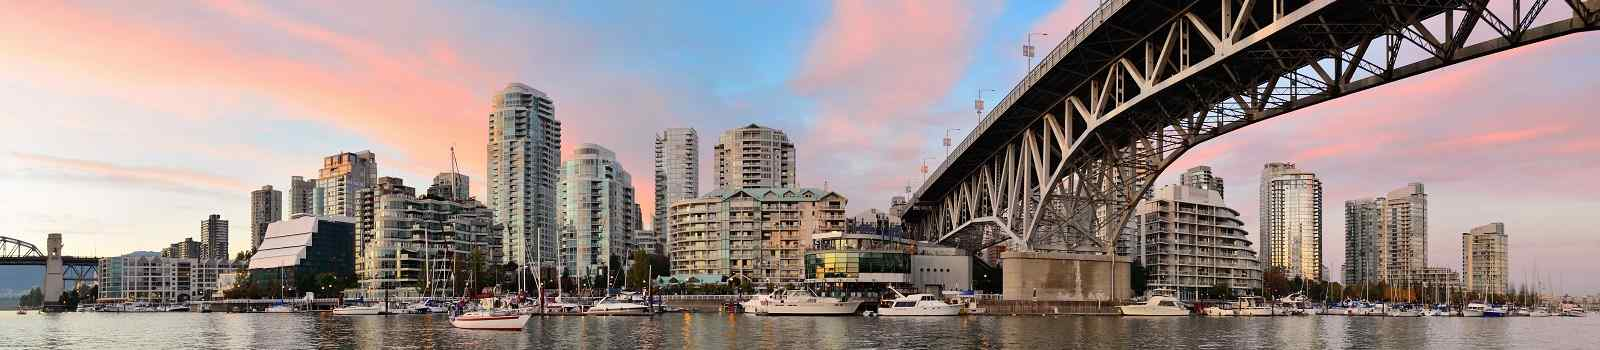 KL-CAD-ROCKIES Vancouver False Creek panorama at sunset with bridge and boat 438921508